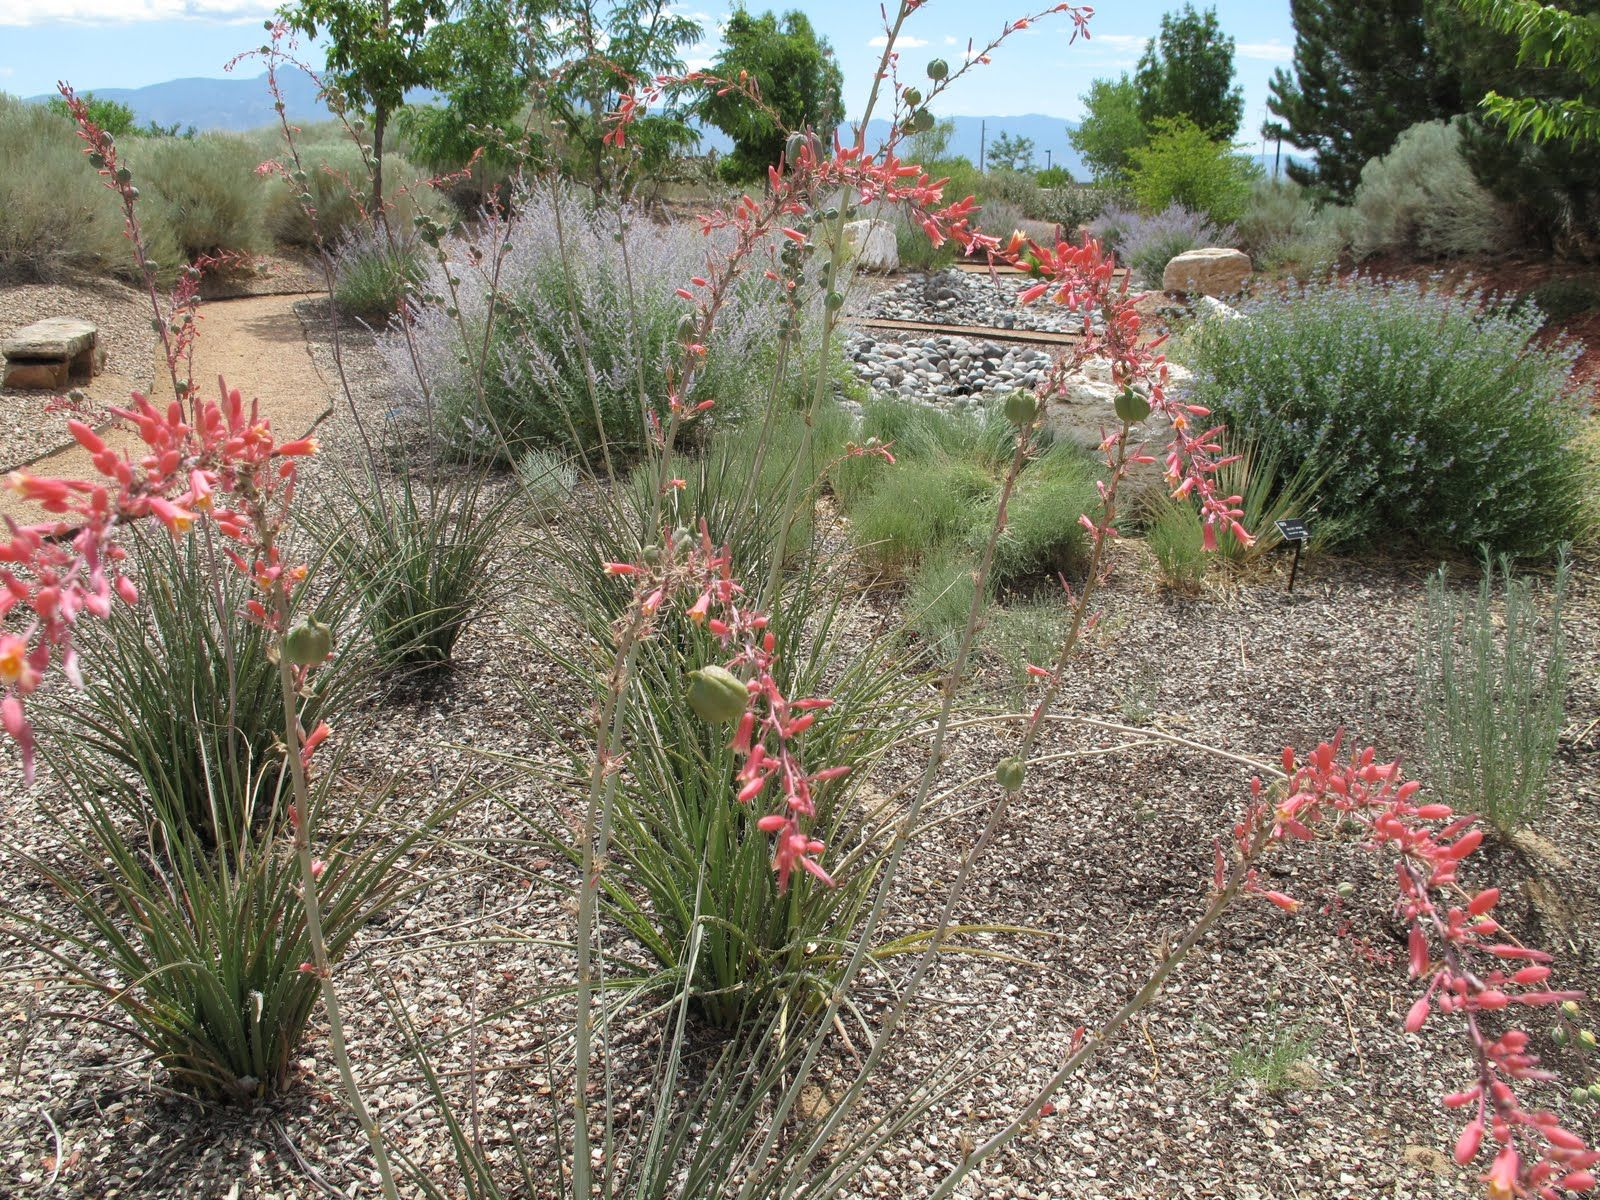 pictures of high schools New Mexico where drought tolerant landscape